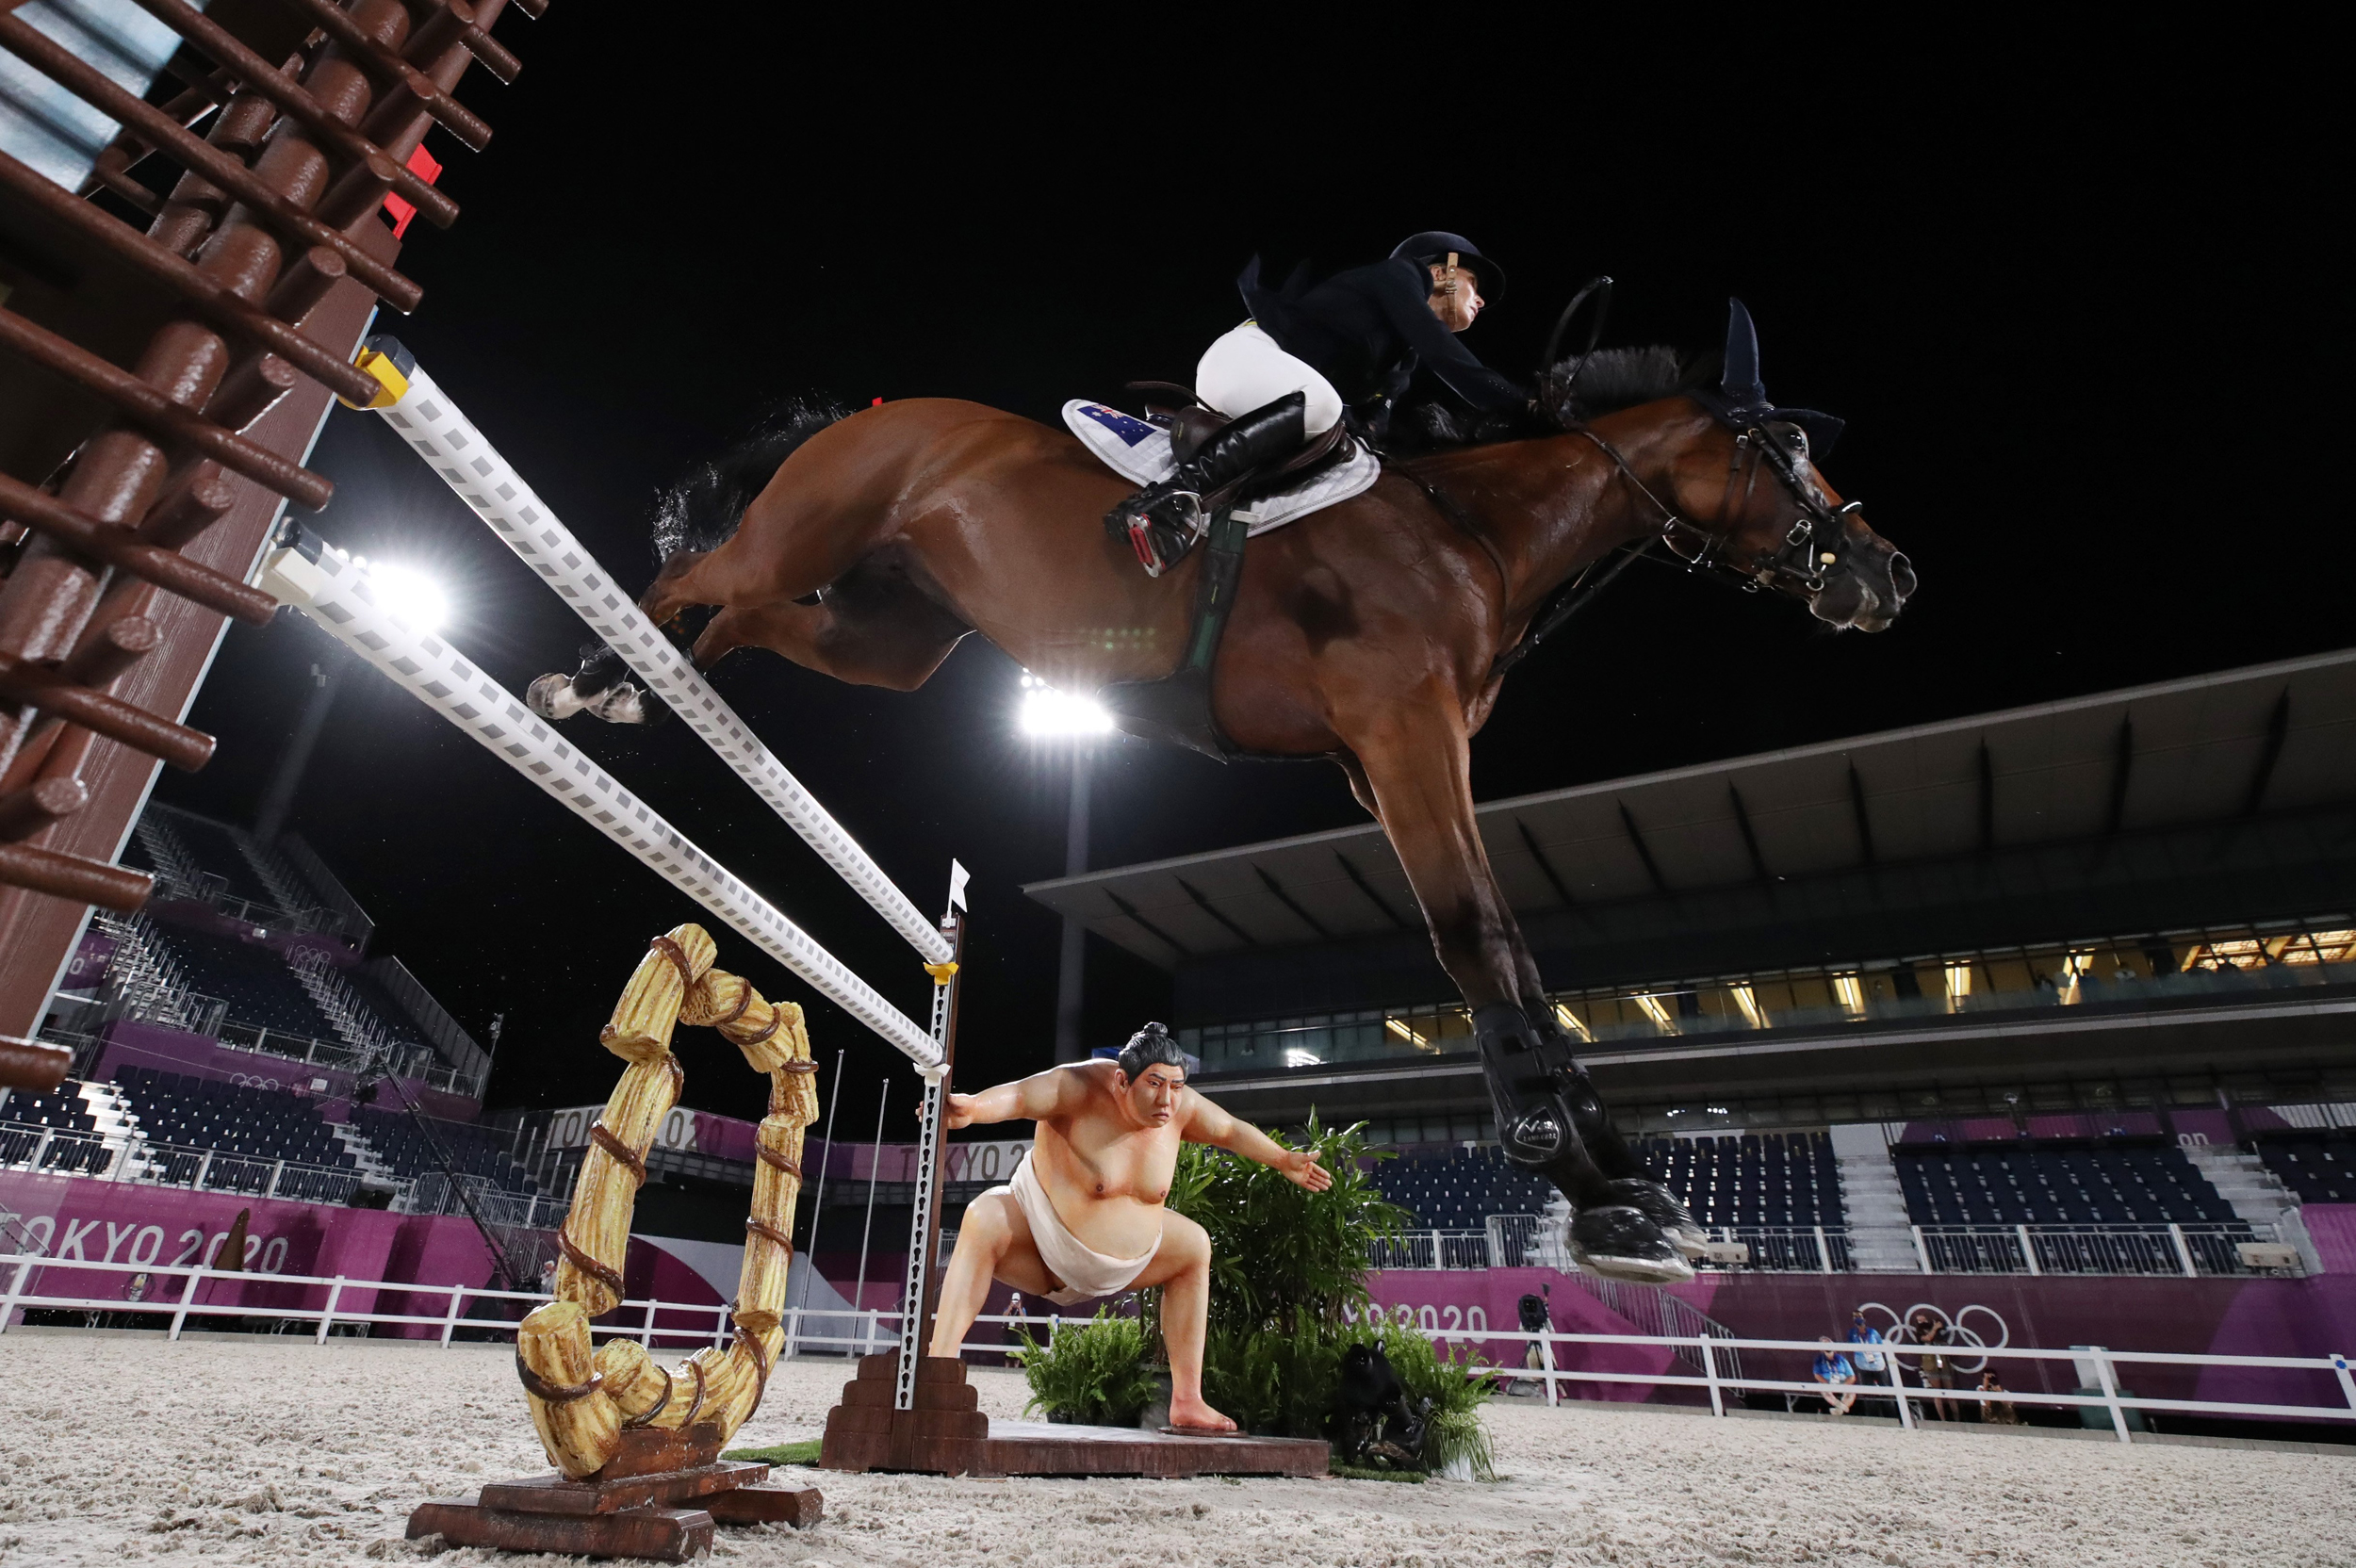 Sumo scare? Olympic riders say horses might be spooked by statue